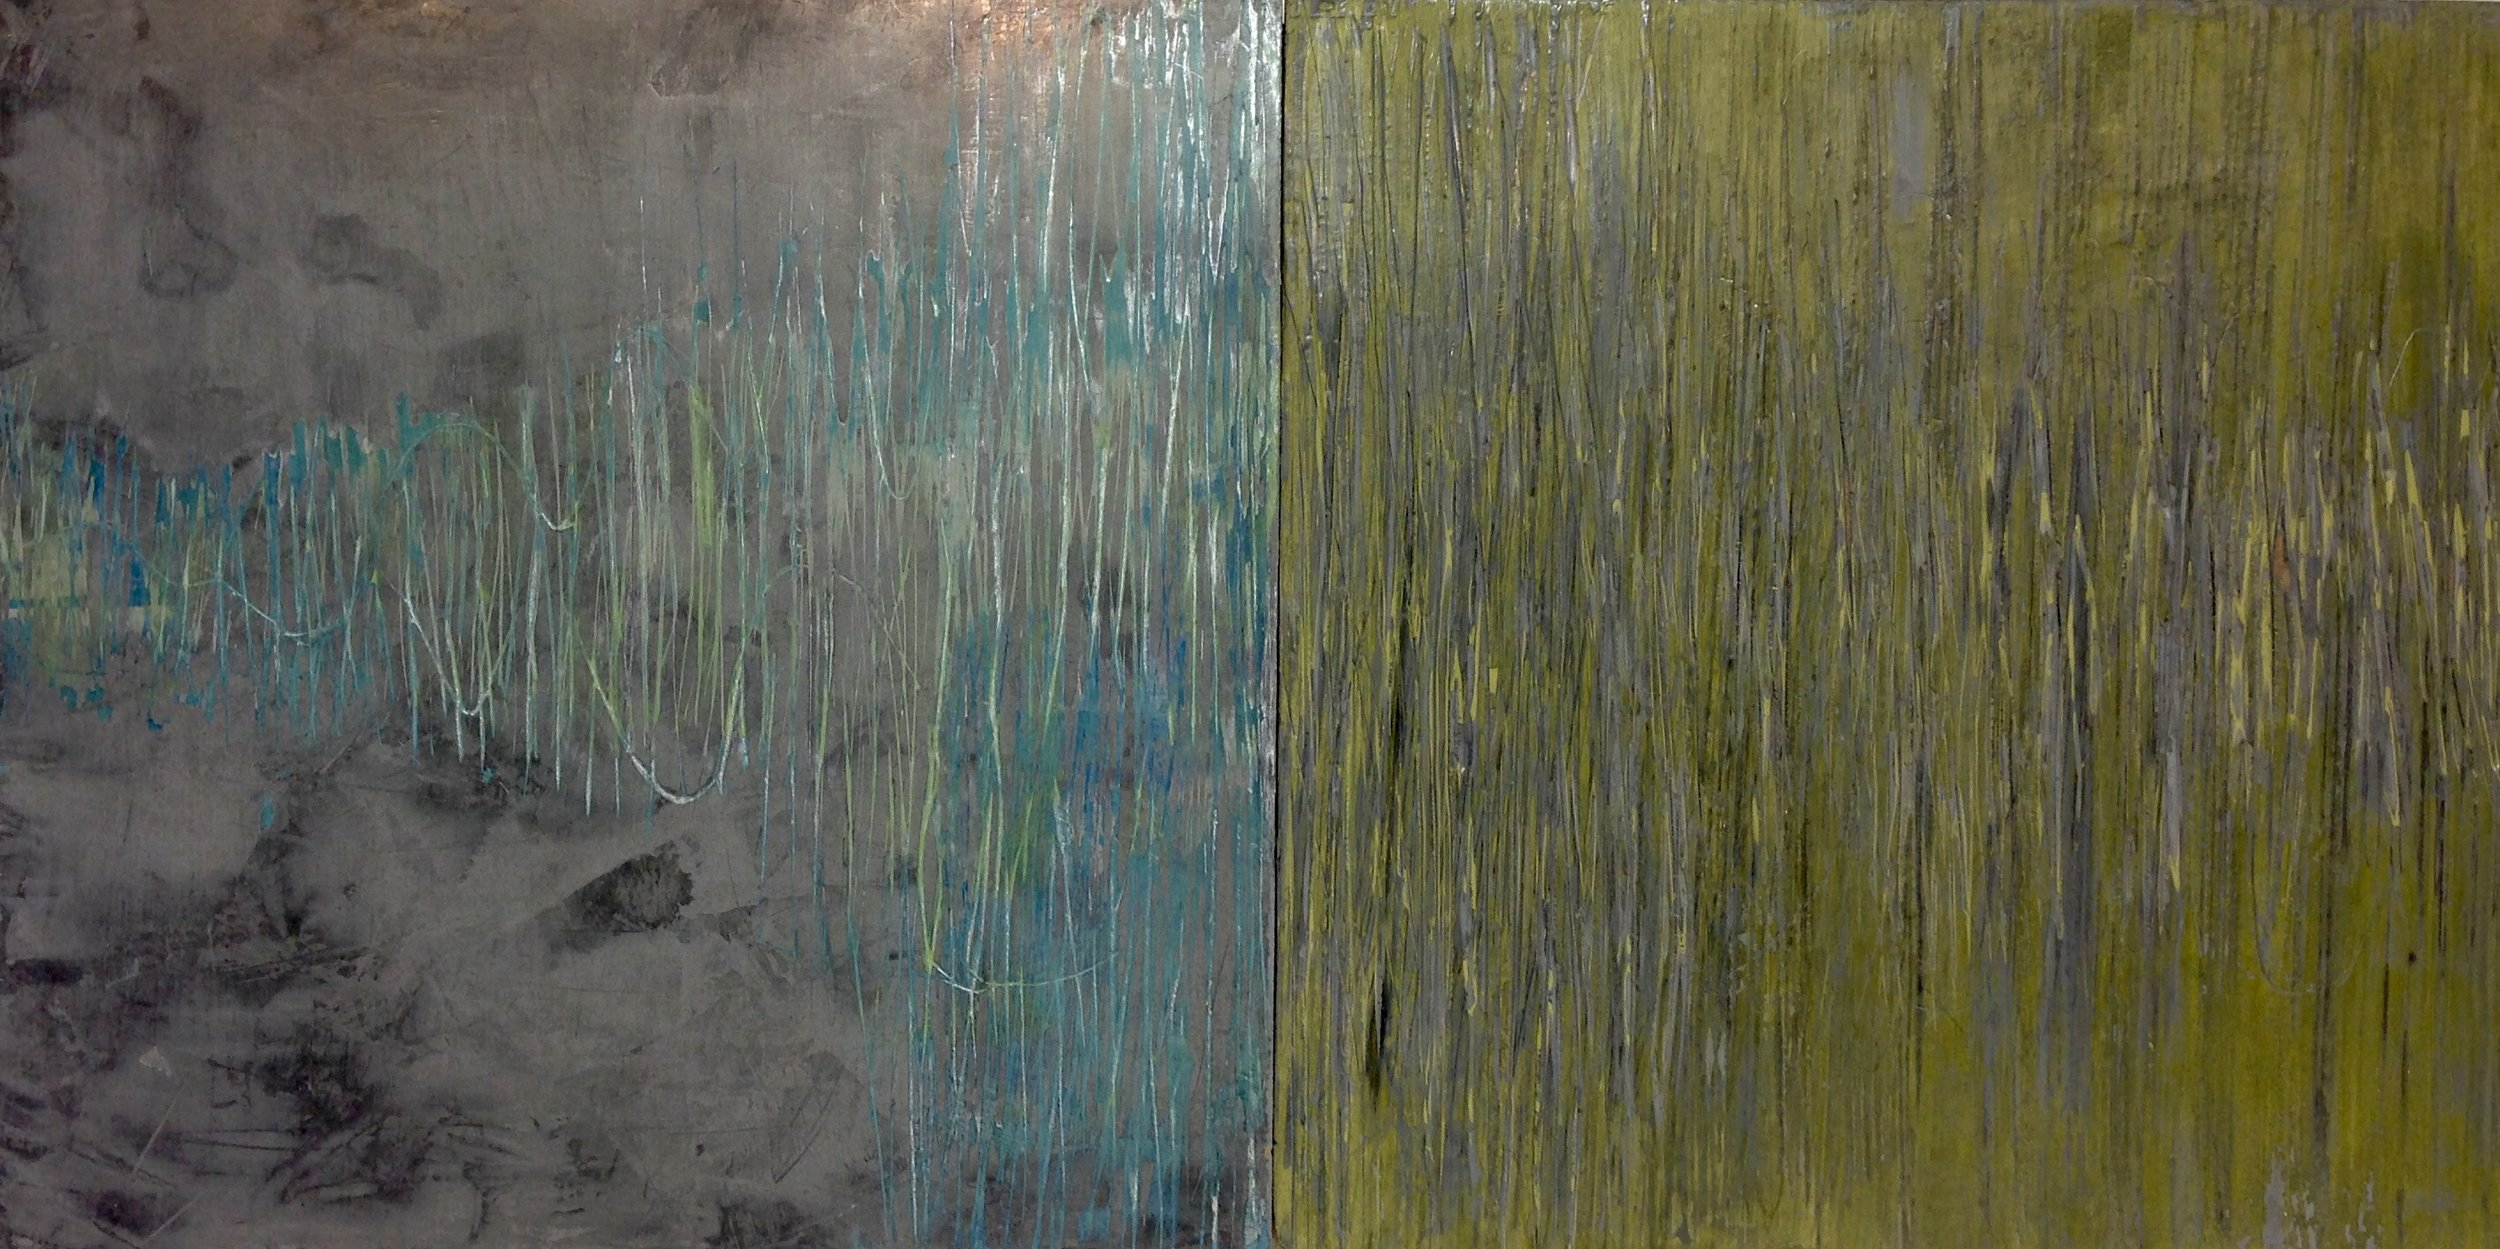 Rebecca Spivack   Diptych 4   2016  Integrated colored plaster and Prismacolor pencil construction  Signed, titled, dated, and branded by the artist,  verso   12 x 24 inches